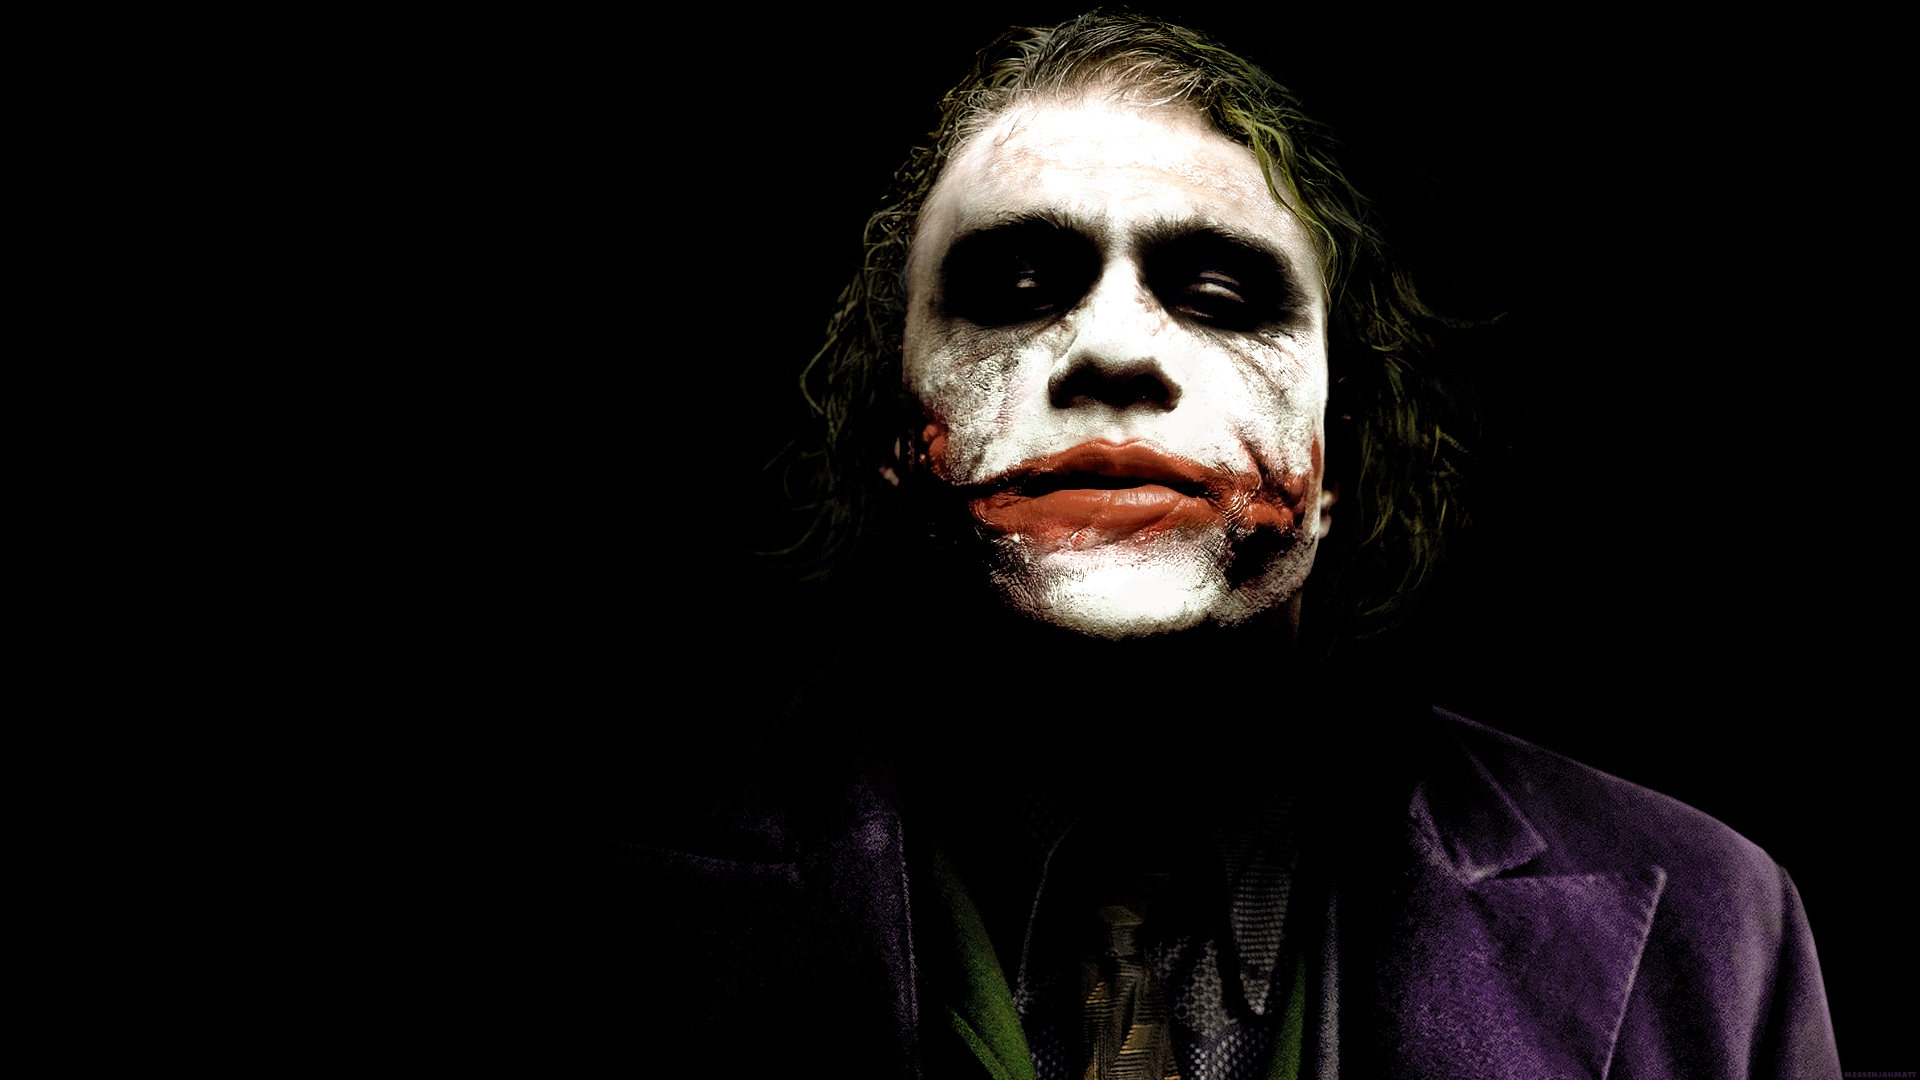 The Joker Wallpaper 1920x1080 The Joker Heath Ledger Batman The 1920x1080